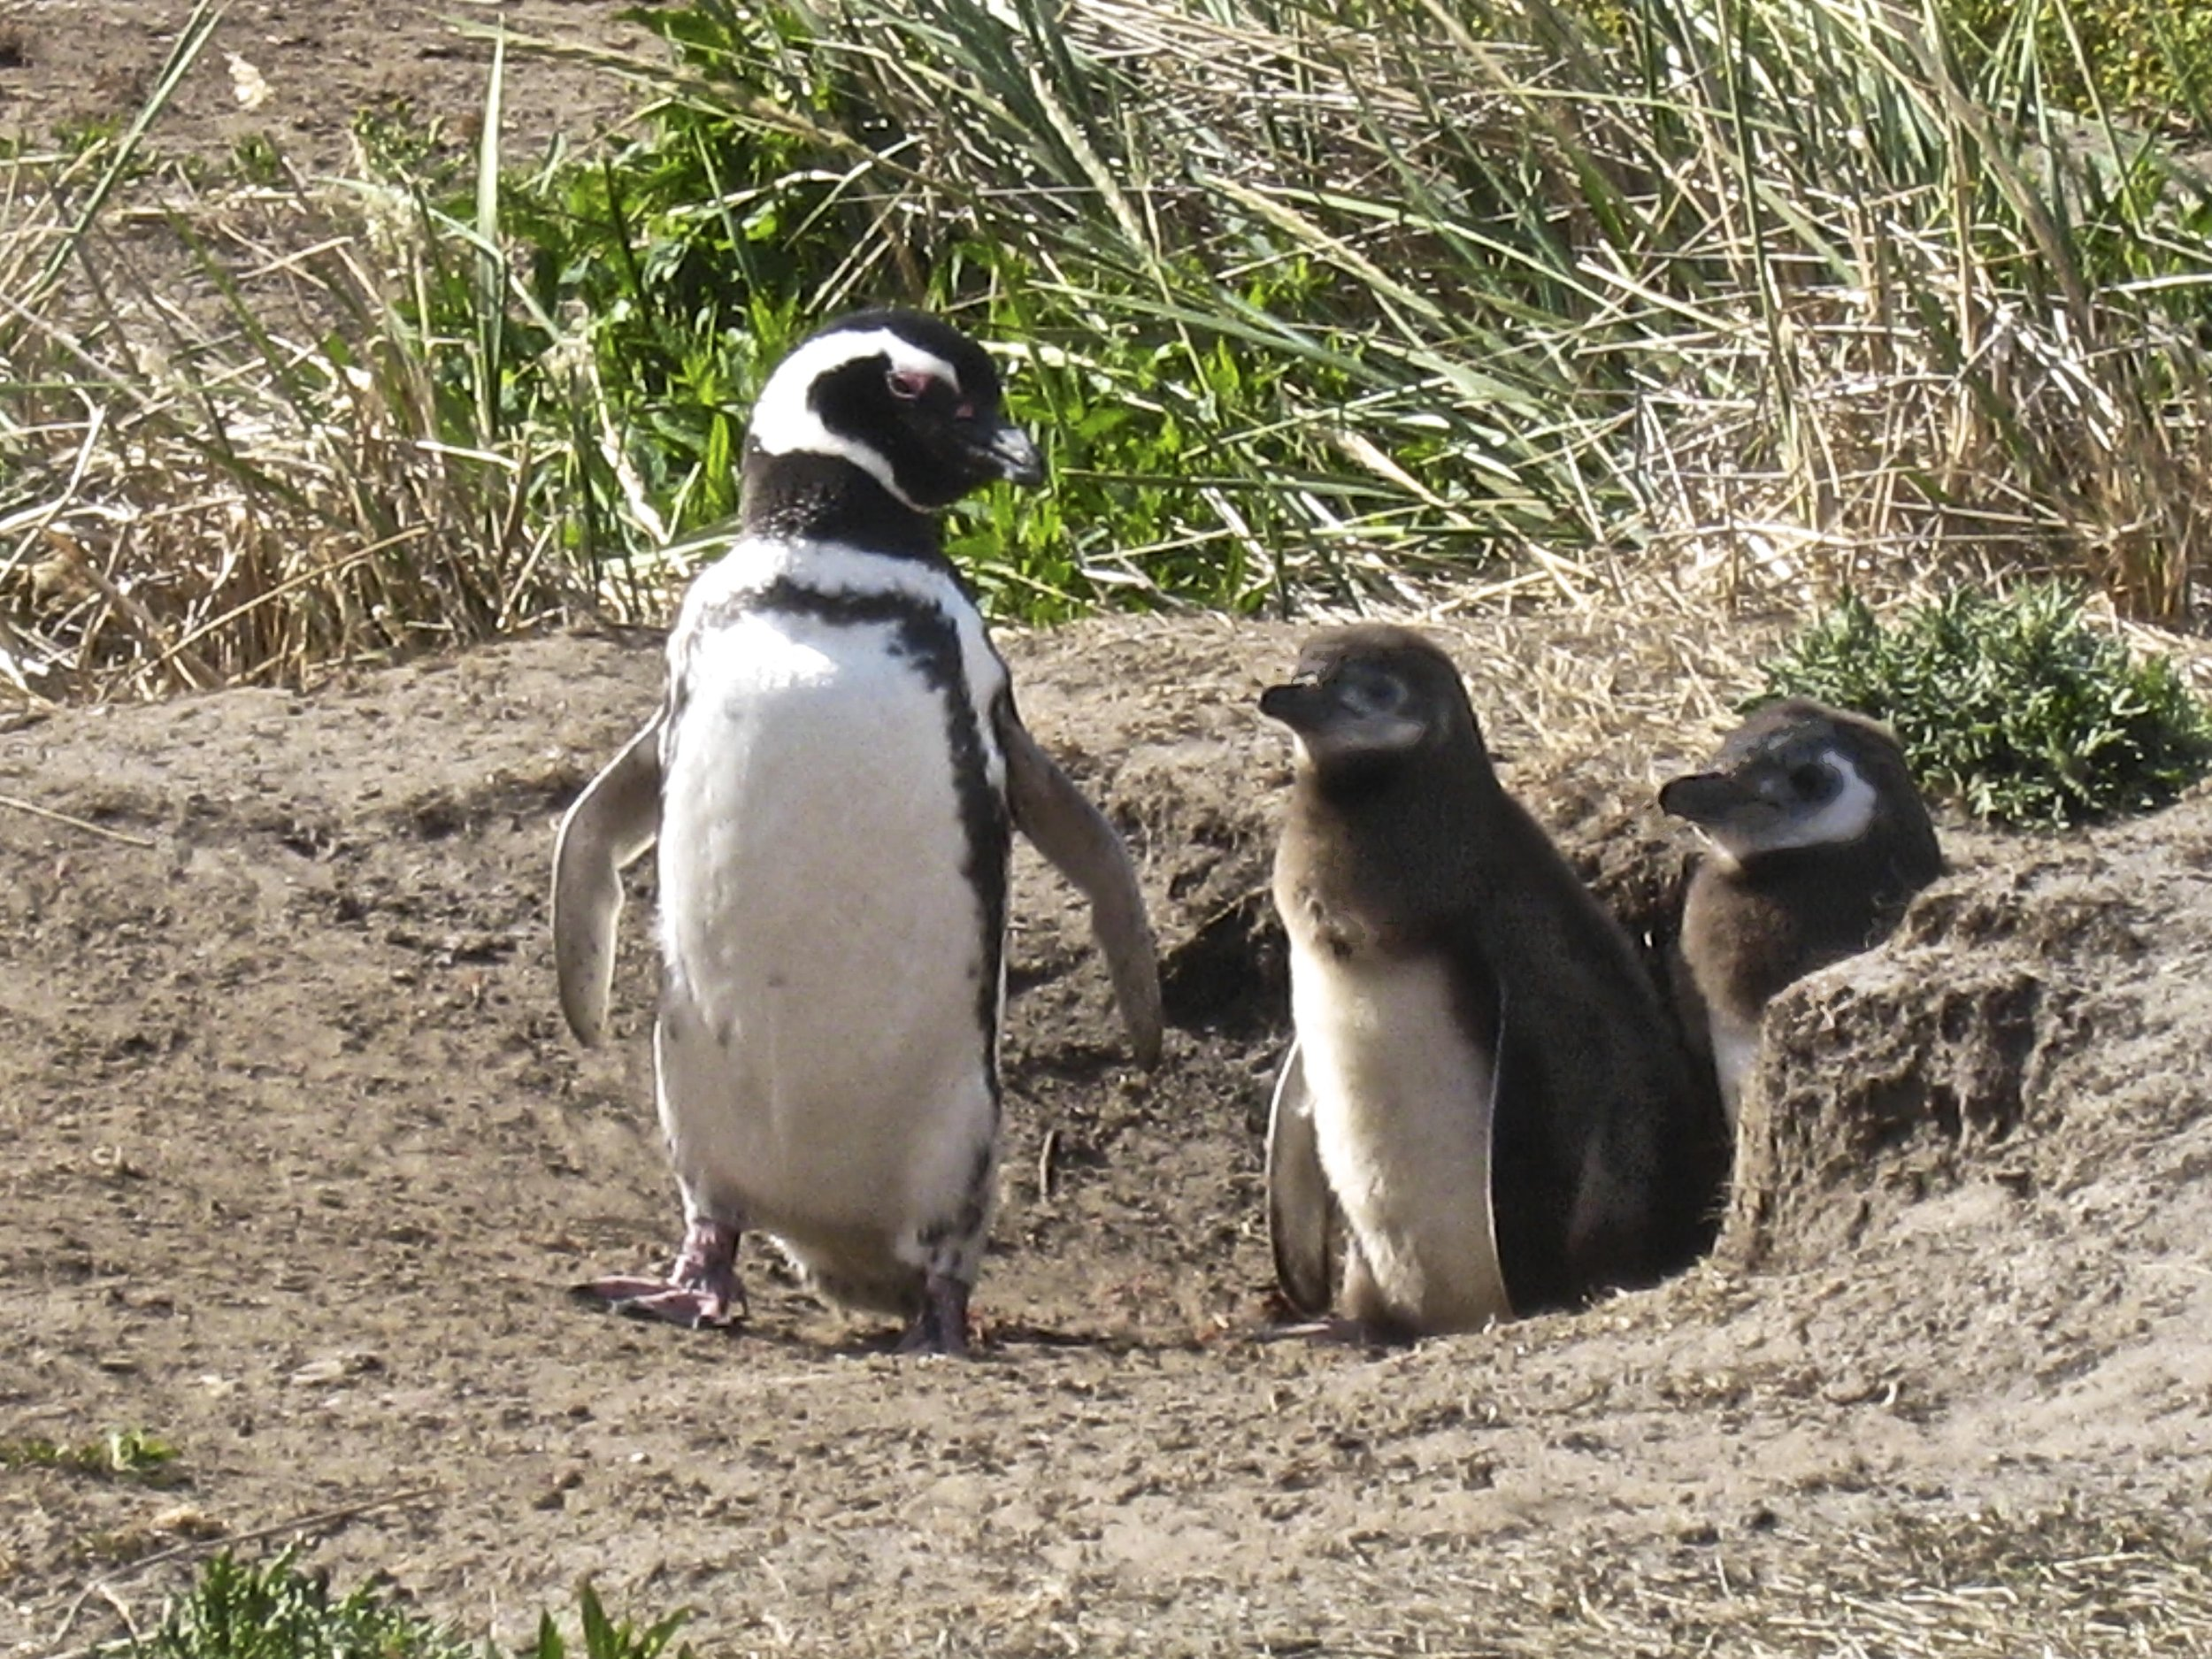 Magellanic Penguin Chicks in Burrow Nest